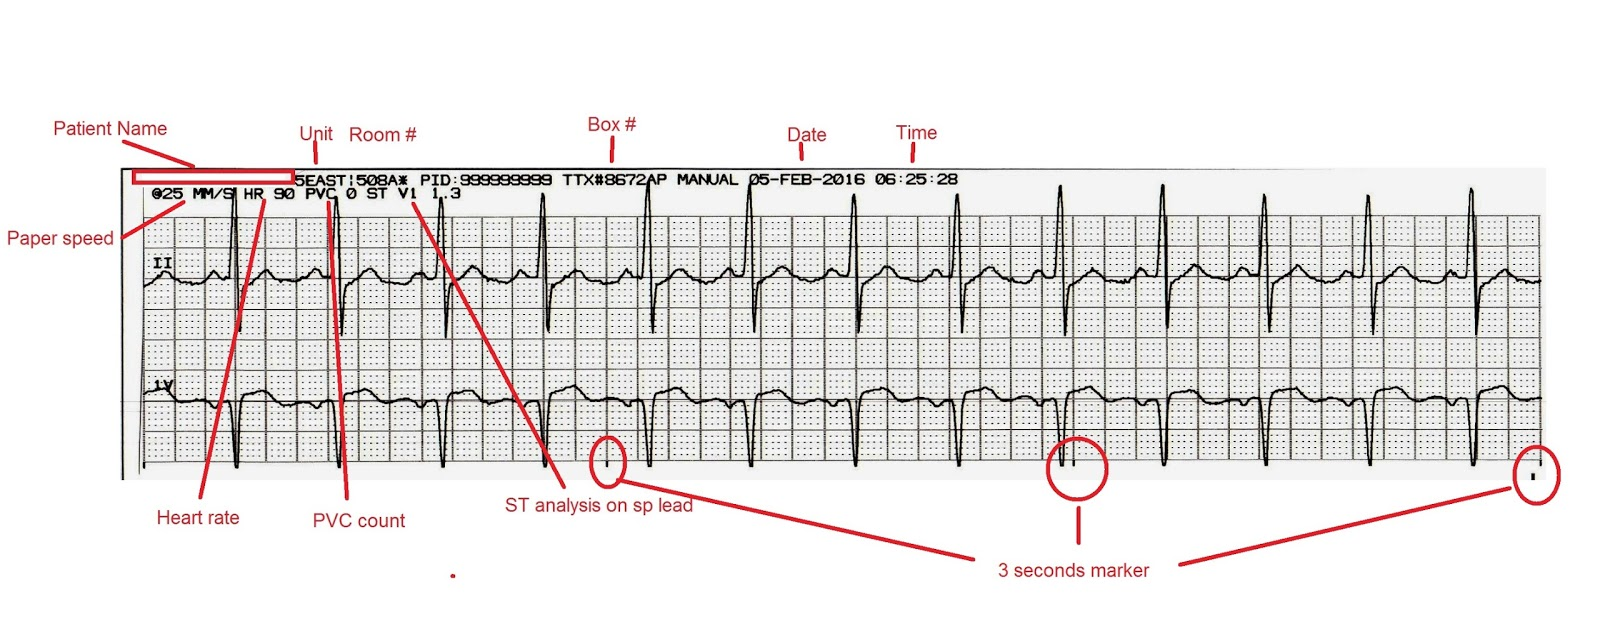 image regarding Printable Ekg Strips called ECG Rhythms: Discovering ECG interpretation in just Telemetry Devices # 1